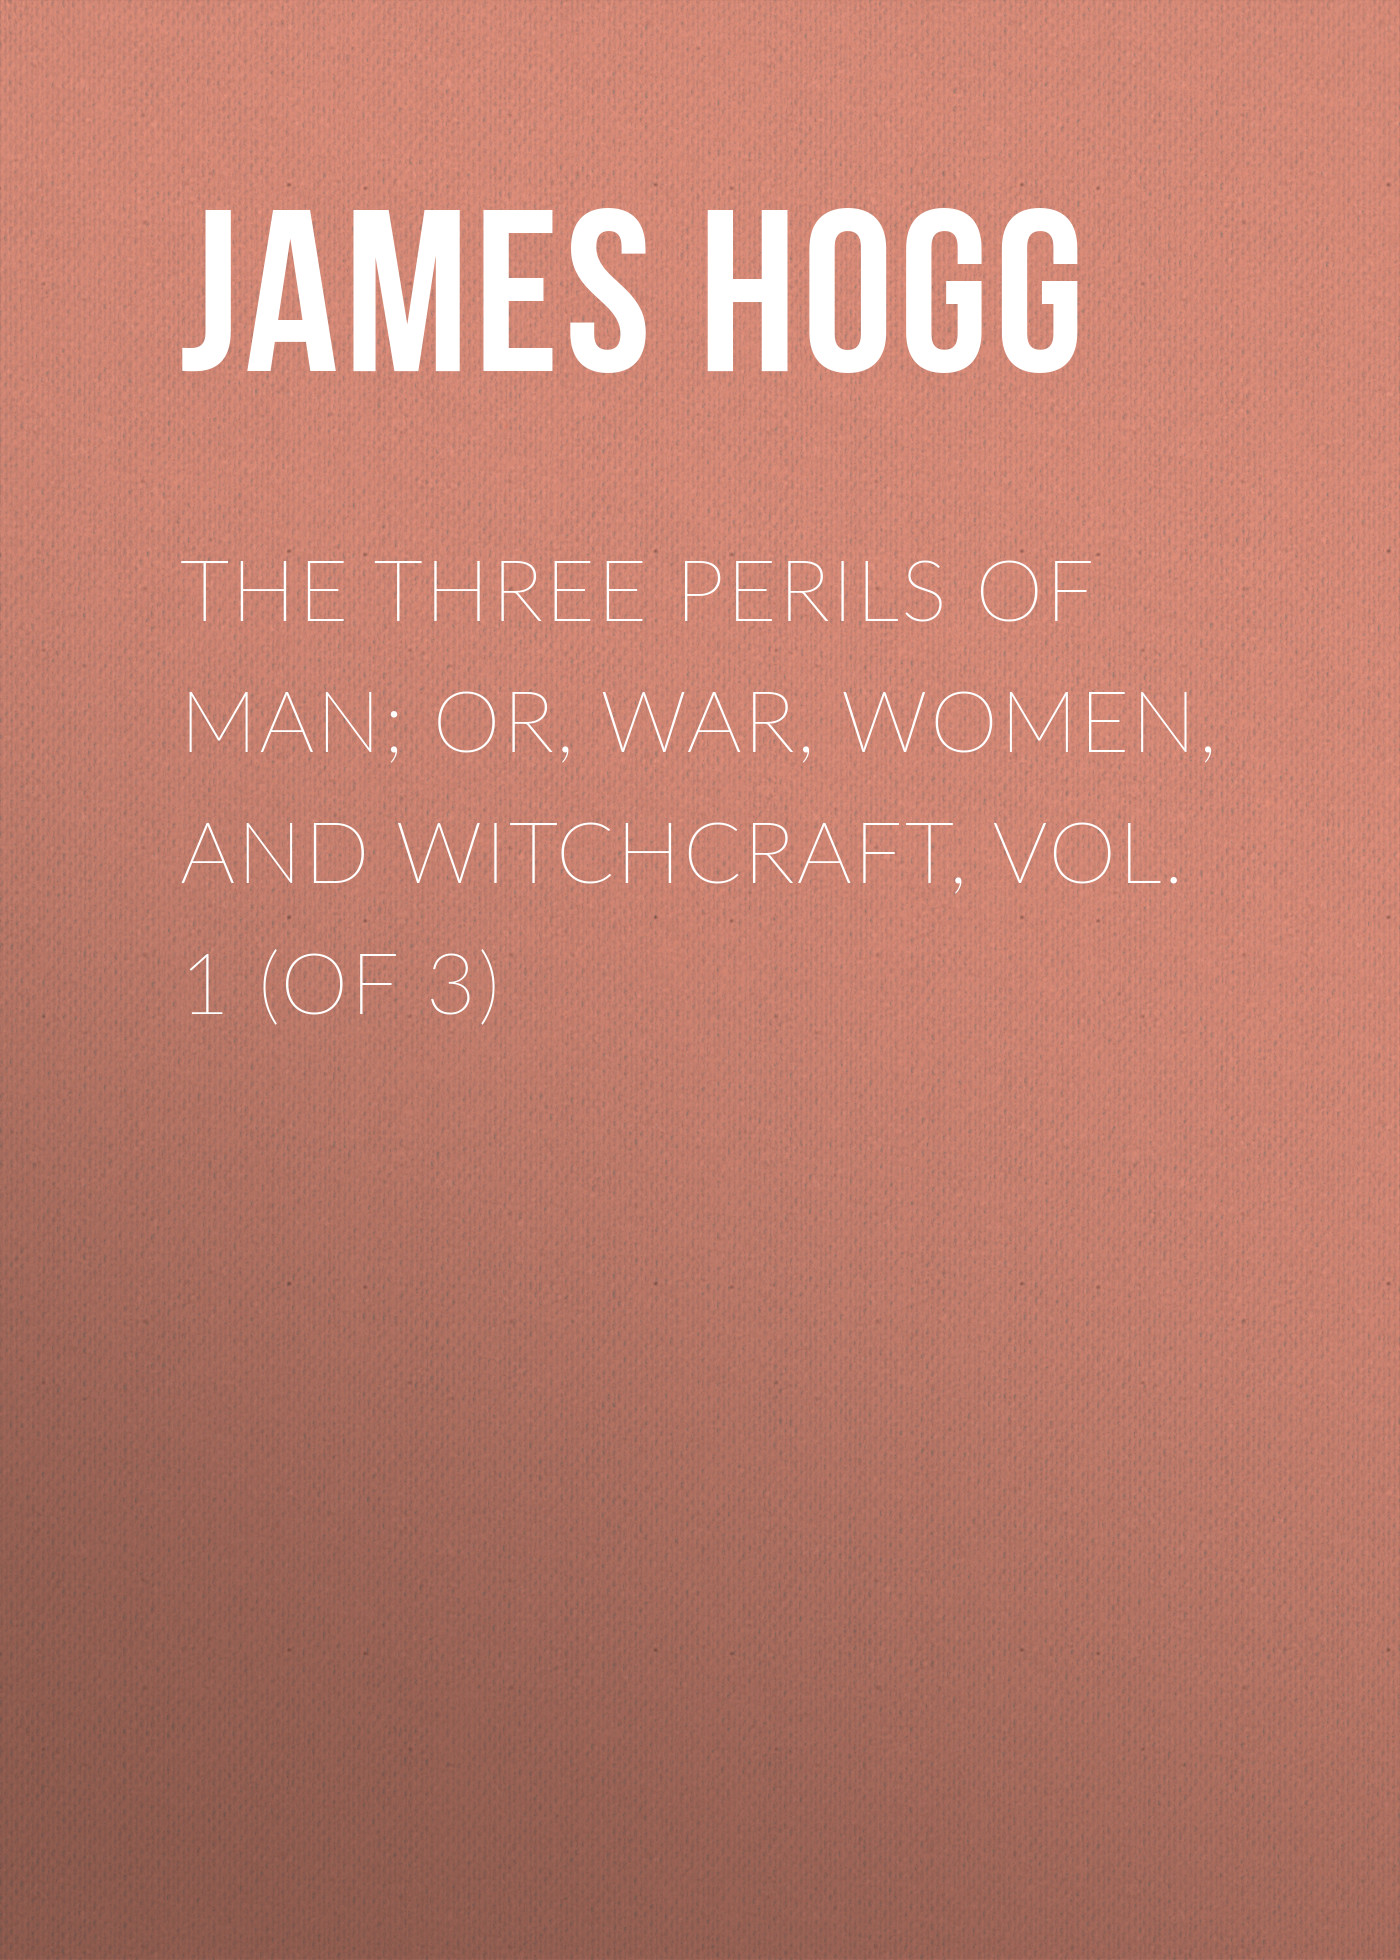 James Hogg The Three Perils of Man; or, War, Women, and Witchcraft, Vol. 1 (of 3) jessica jones vol 3 return of the purple man